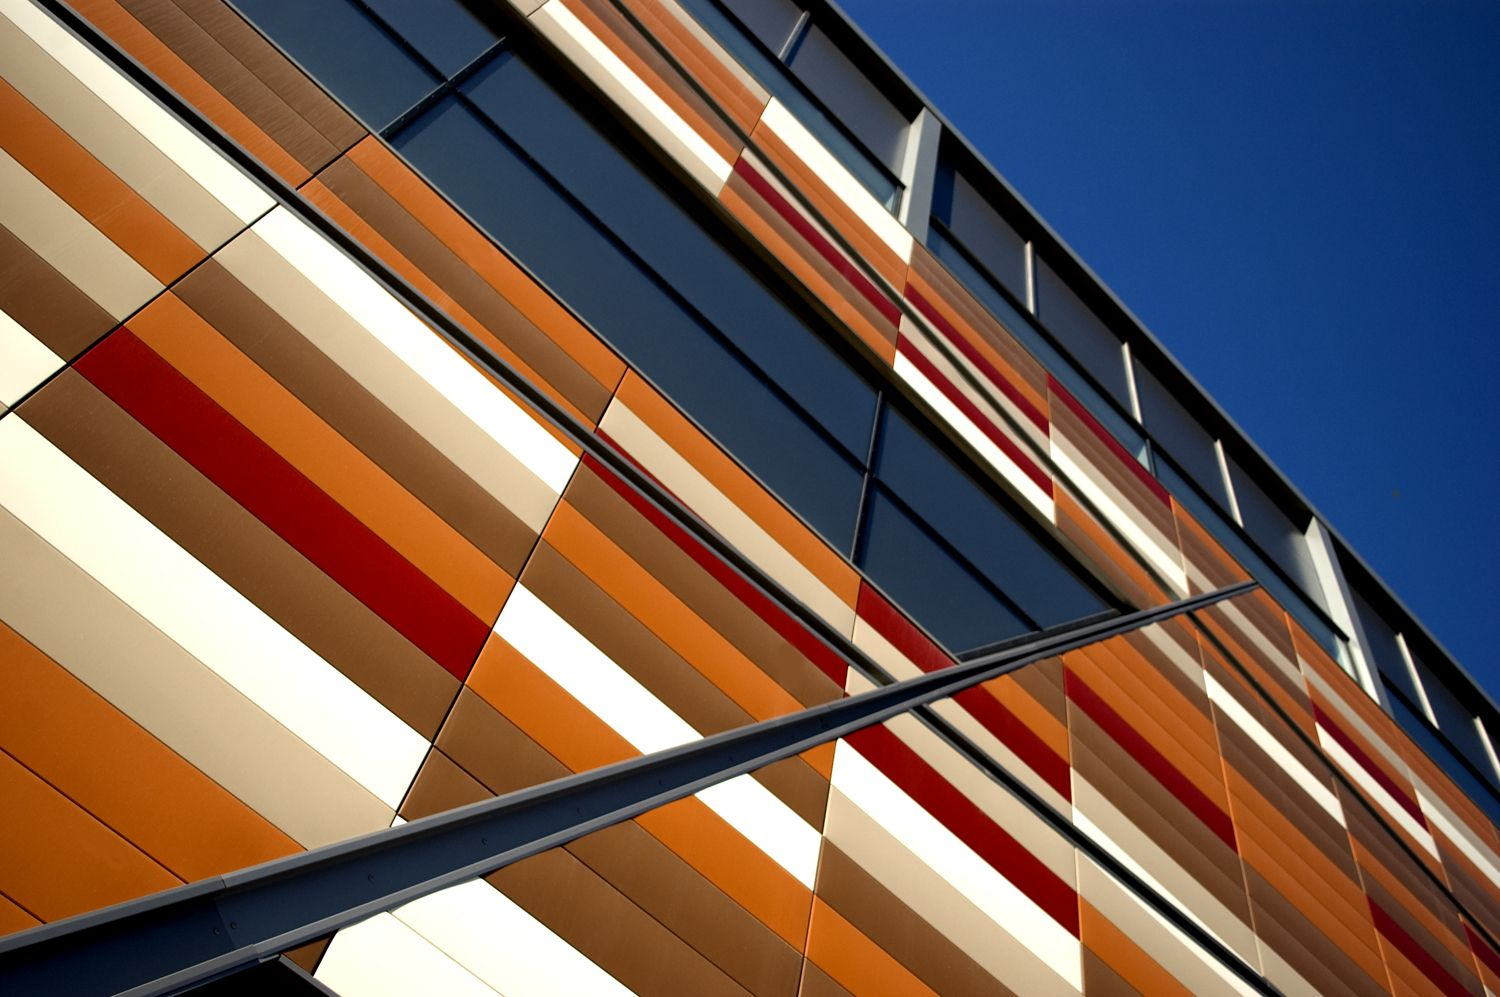 Customised façade by Hunter Douglas helped to give the Tesco store in Sheffield, South Yorkshire, a striking and distinctive look.  #architecture  #hunterdouglas  #façades